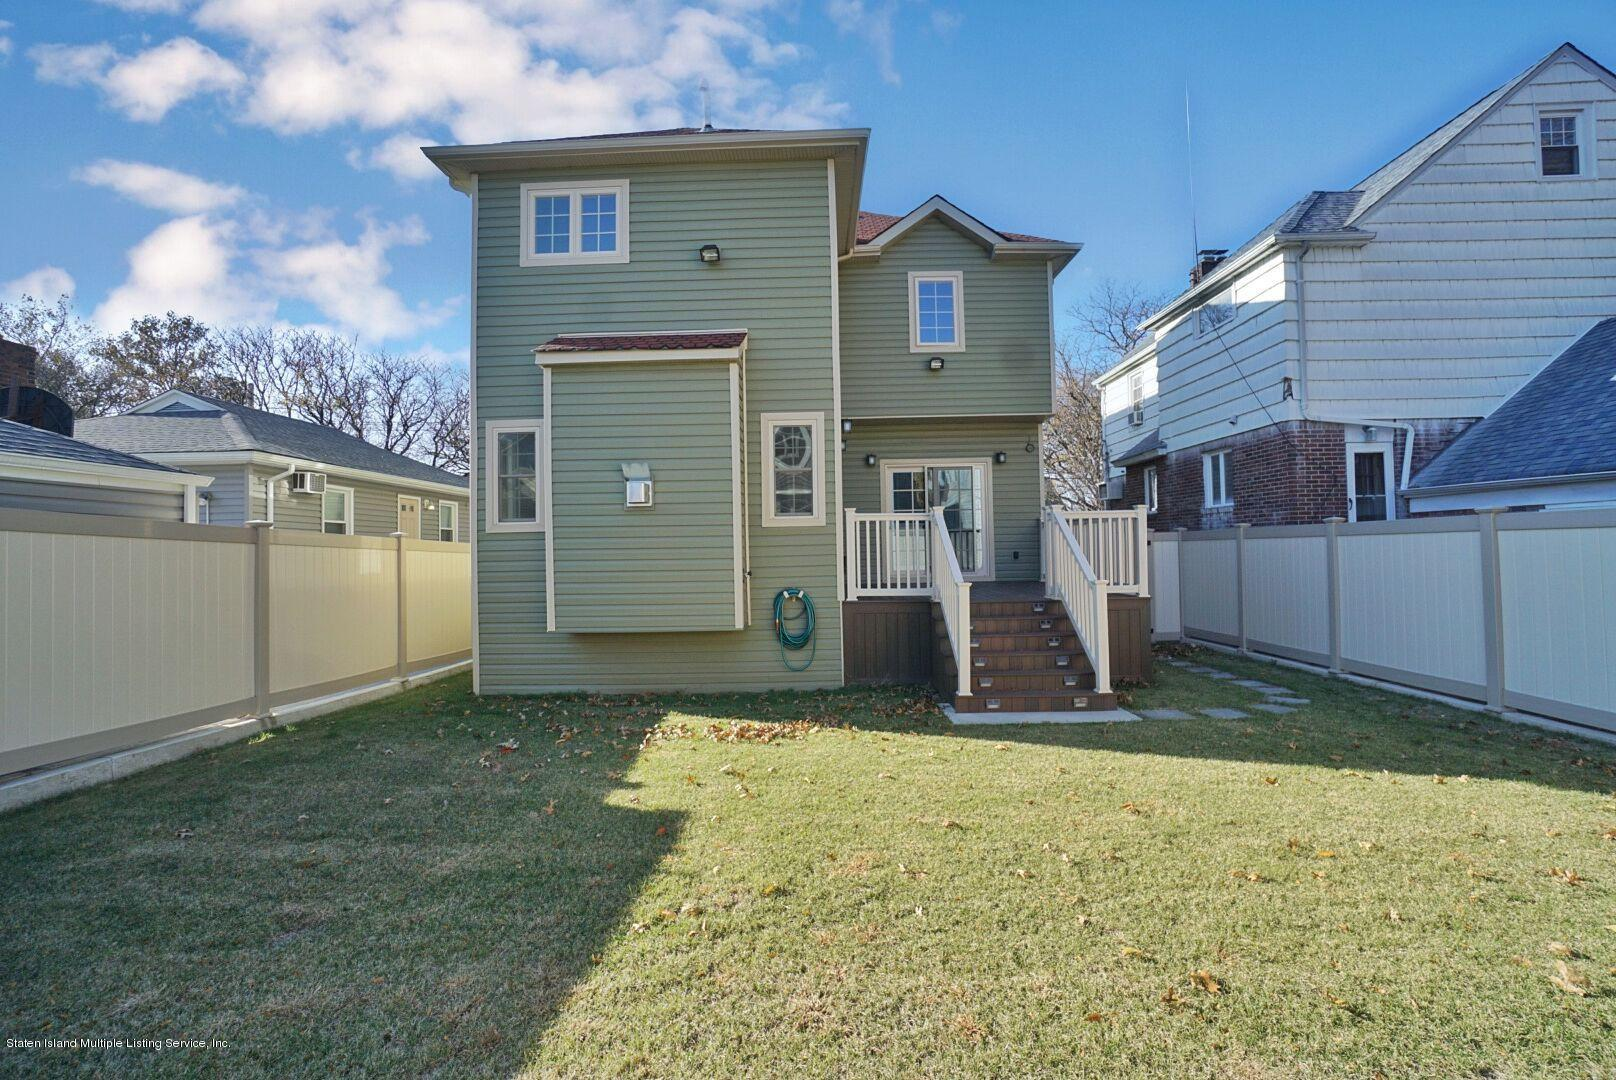 Single Family - Detached 165 Woolley Avenue  Staten Island, NY 10314, MLS-1128875-8